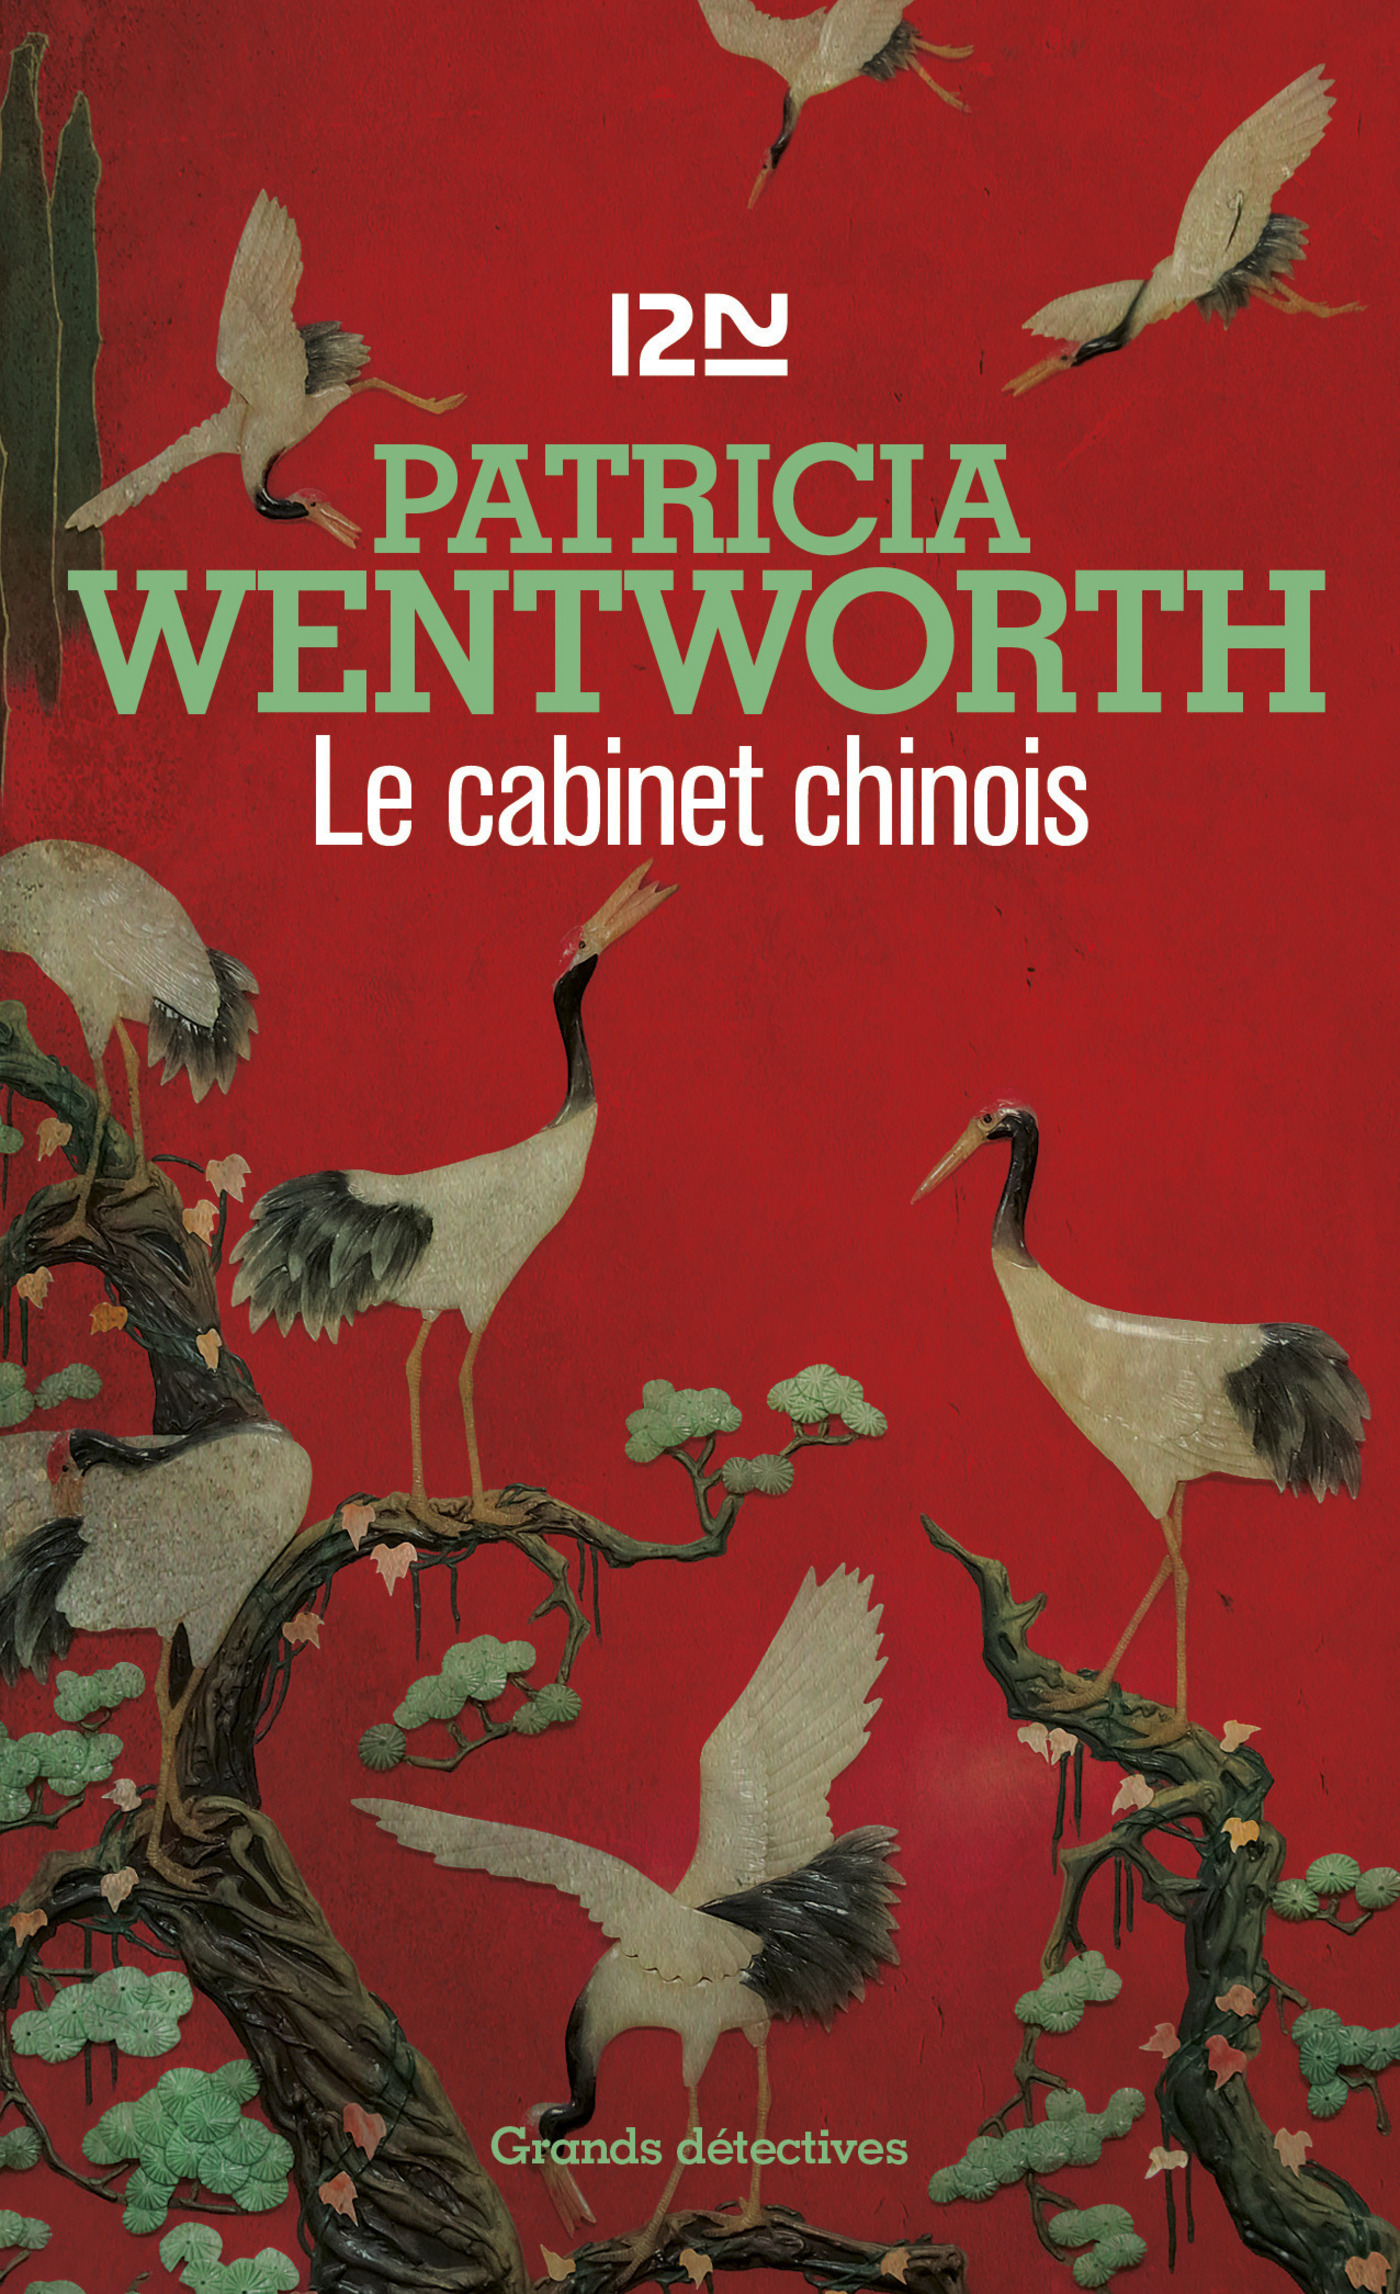 Le cabinet chinois | WENTWORTH, Patricia